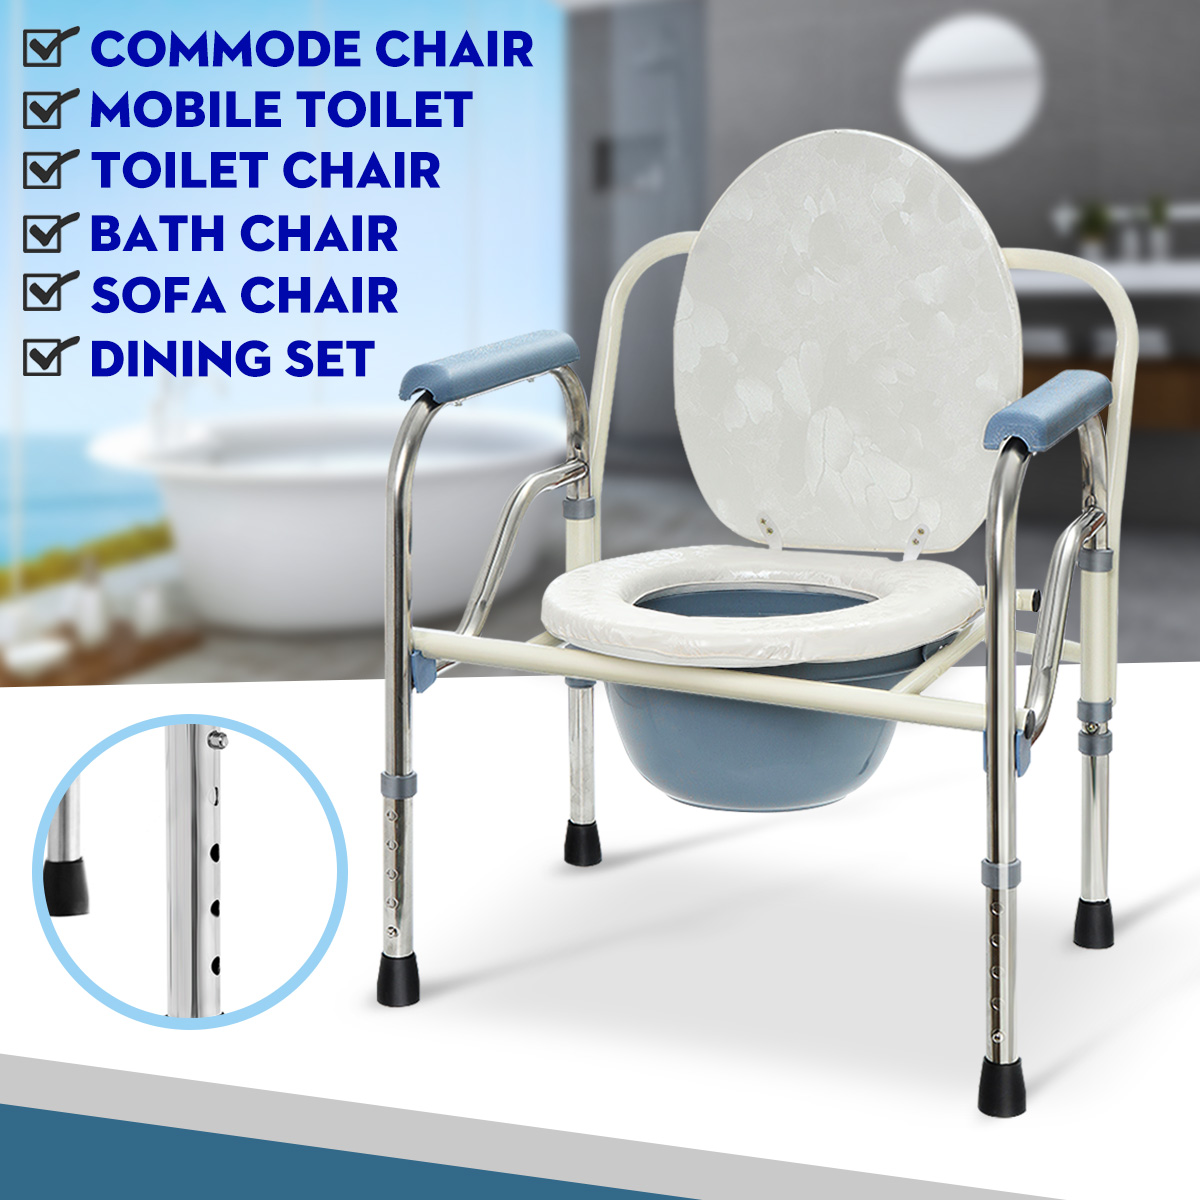 Shower Bathroom Seat Foldable Commode Toilet Safety Chair Bedside Adult Potty Removable Adjustable Height Lightweight DurableShower Bathroom Seat Foldable Commode Toilet Safety Chair Bedside Adult Potty Removable Adjustable Height Lightweight Durable